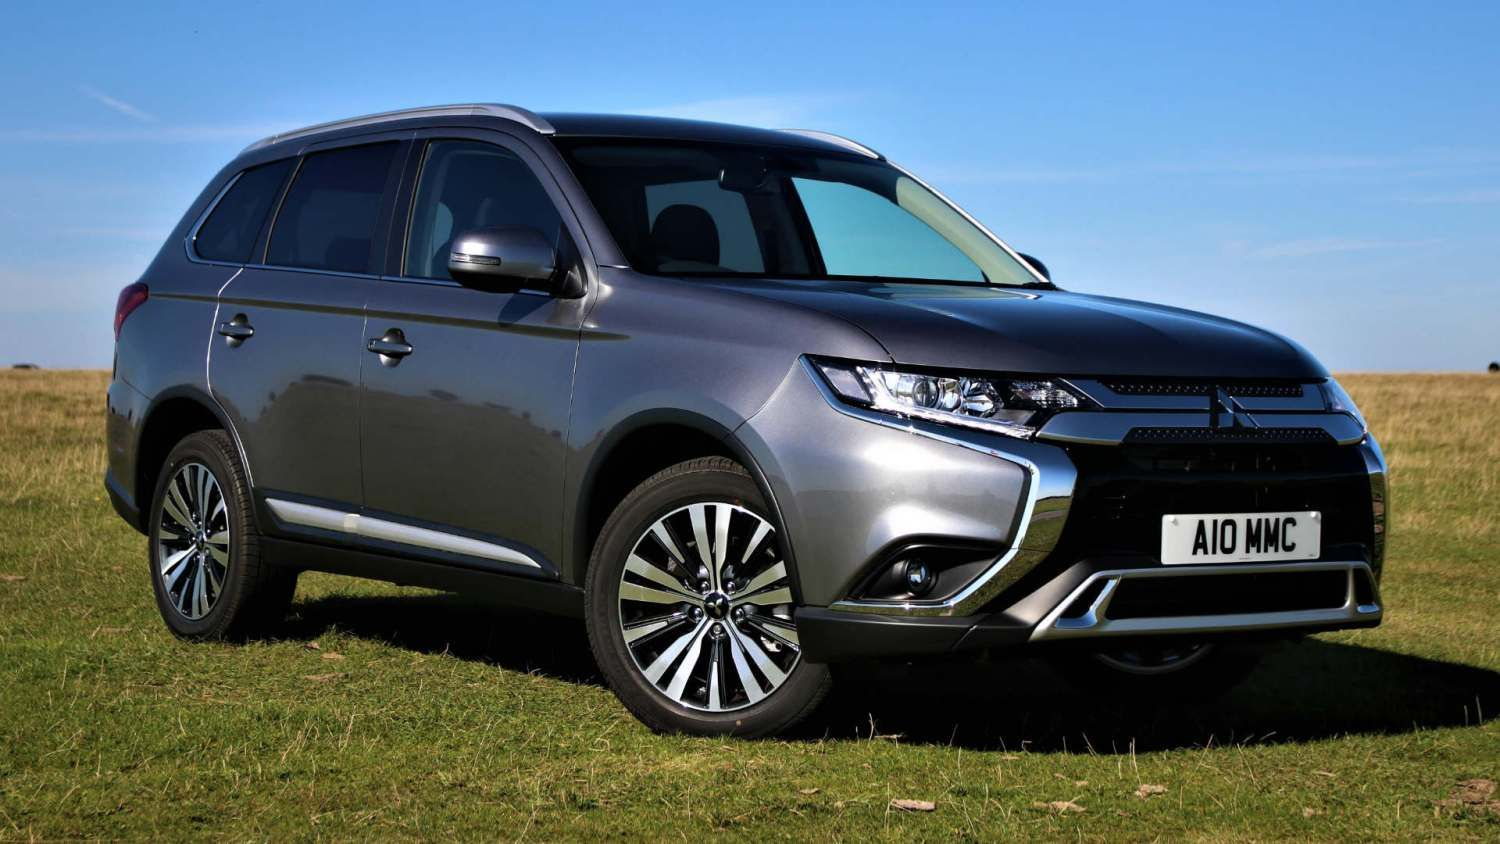 Engine And Interior Upgrades For 2020 Mitsubishi Outlander In 2020